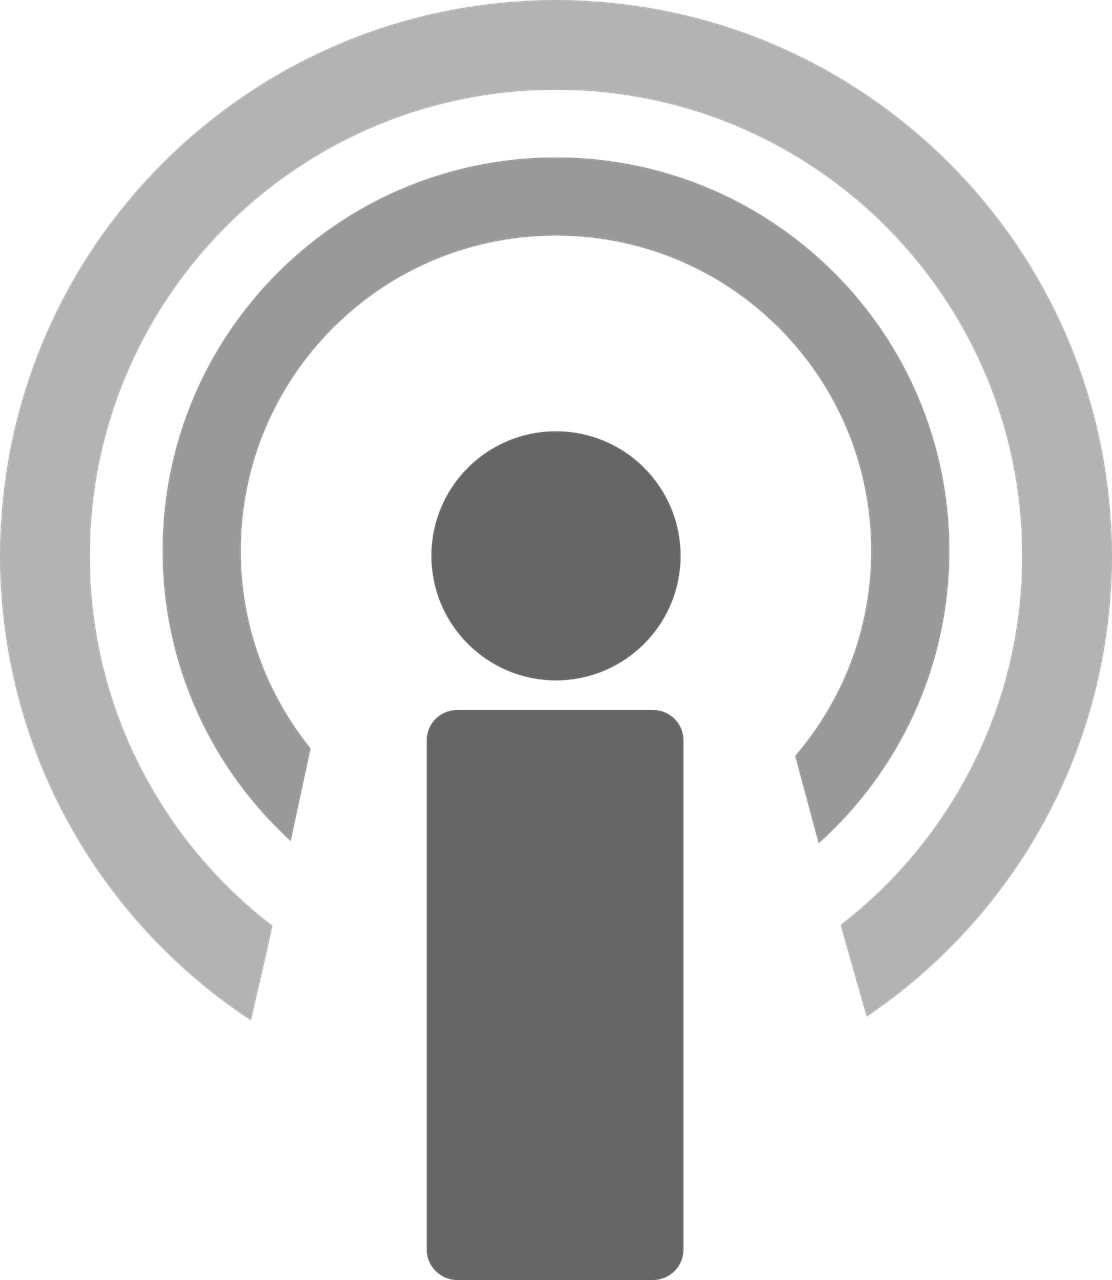 podcast-icon-1322239_1280.png